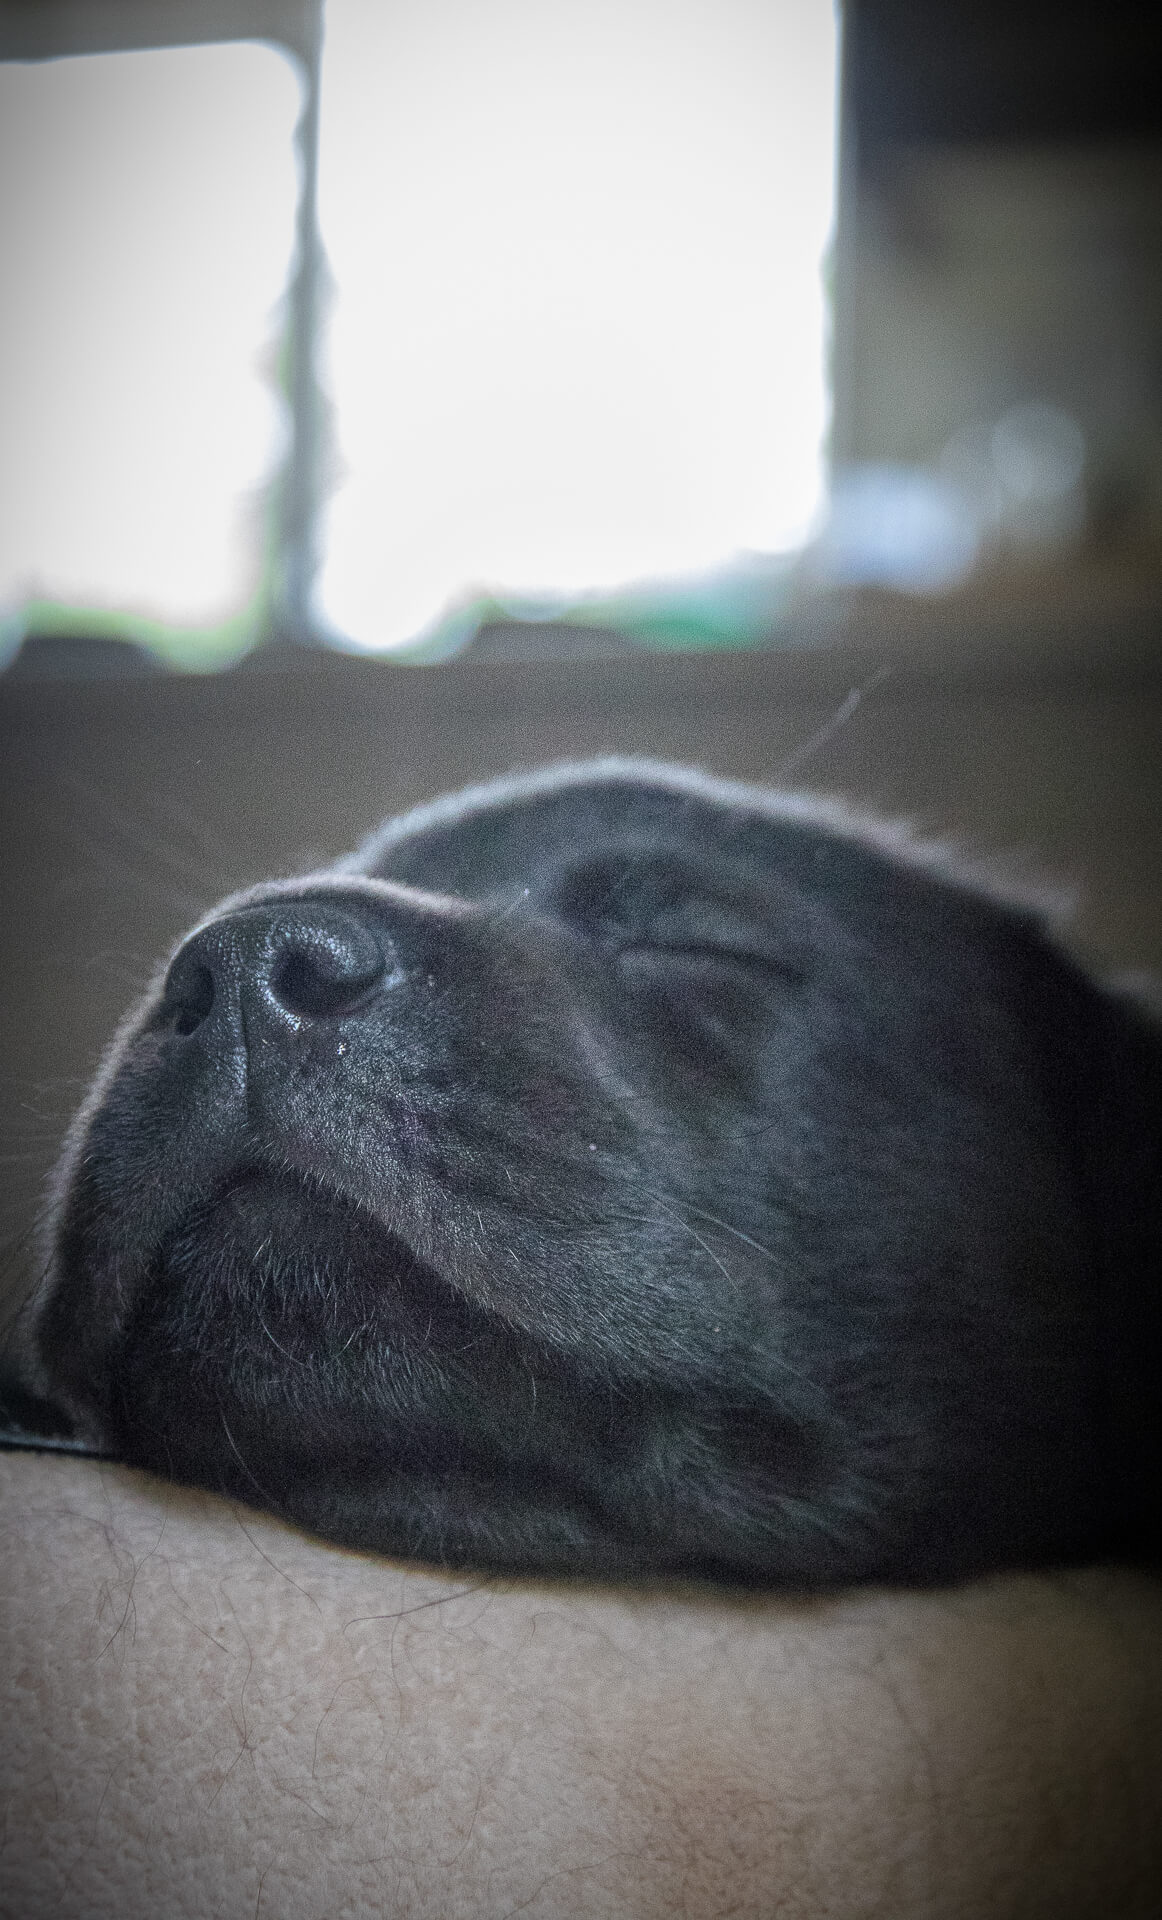 Close up picture of the head of a Black Labrador puppy.